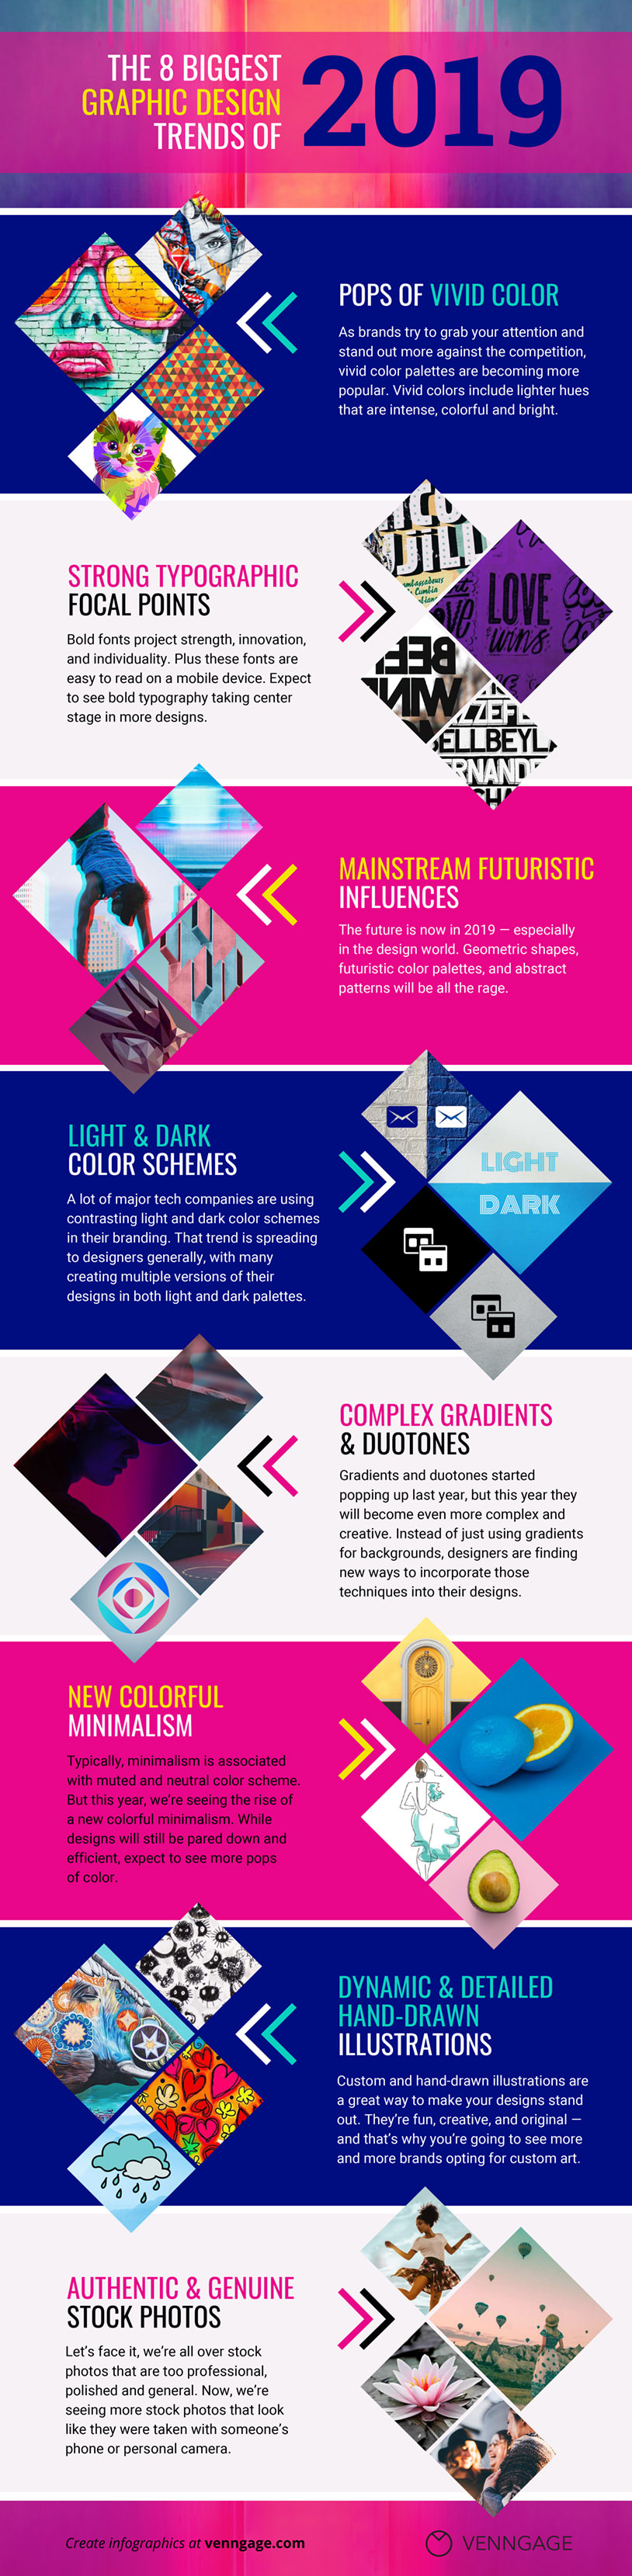 2019 design trends infographic